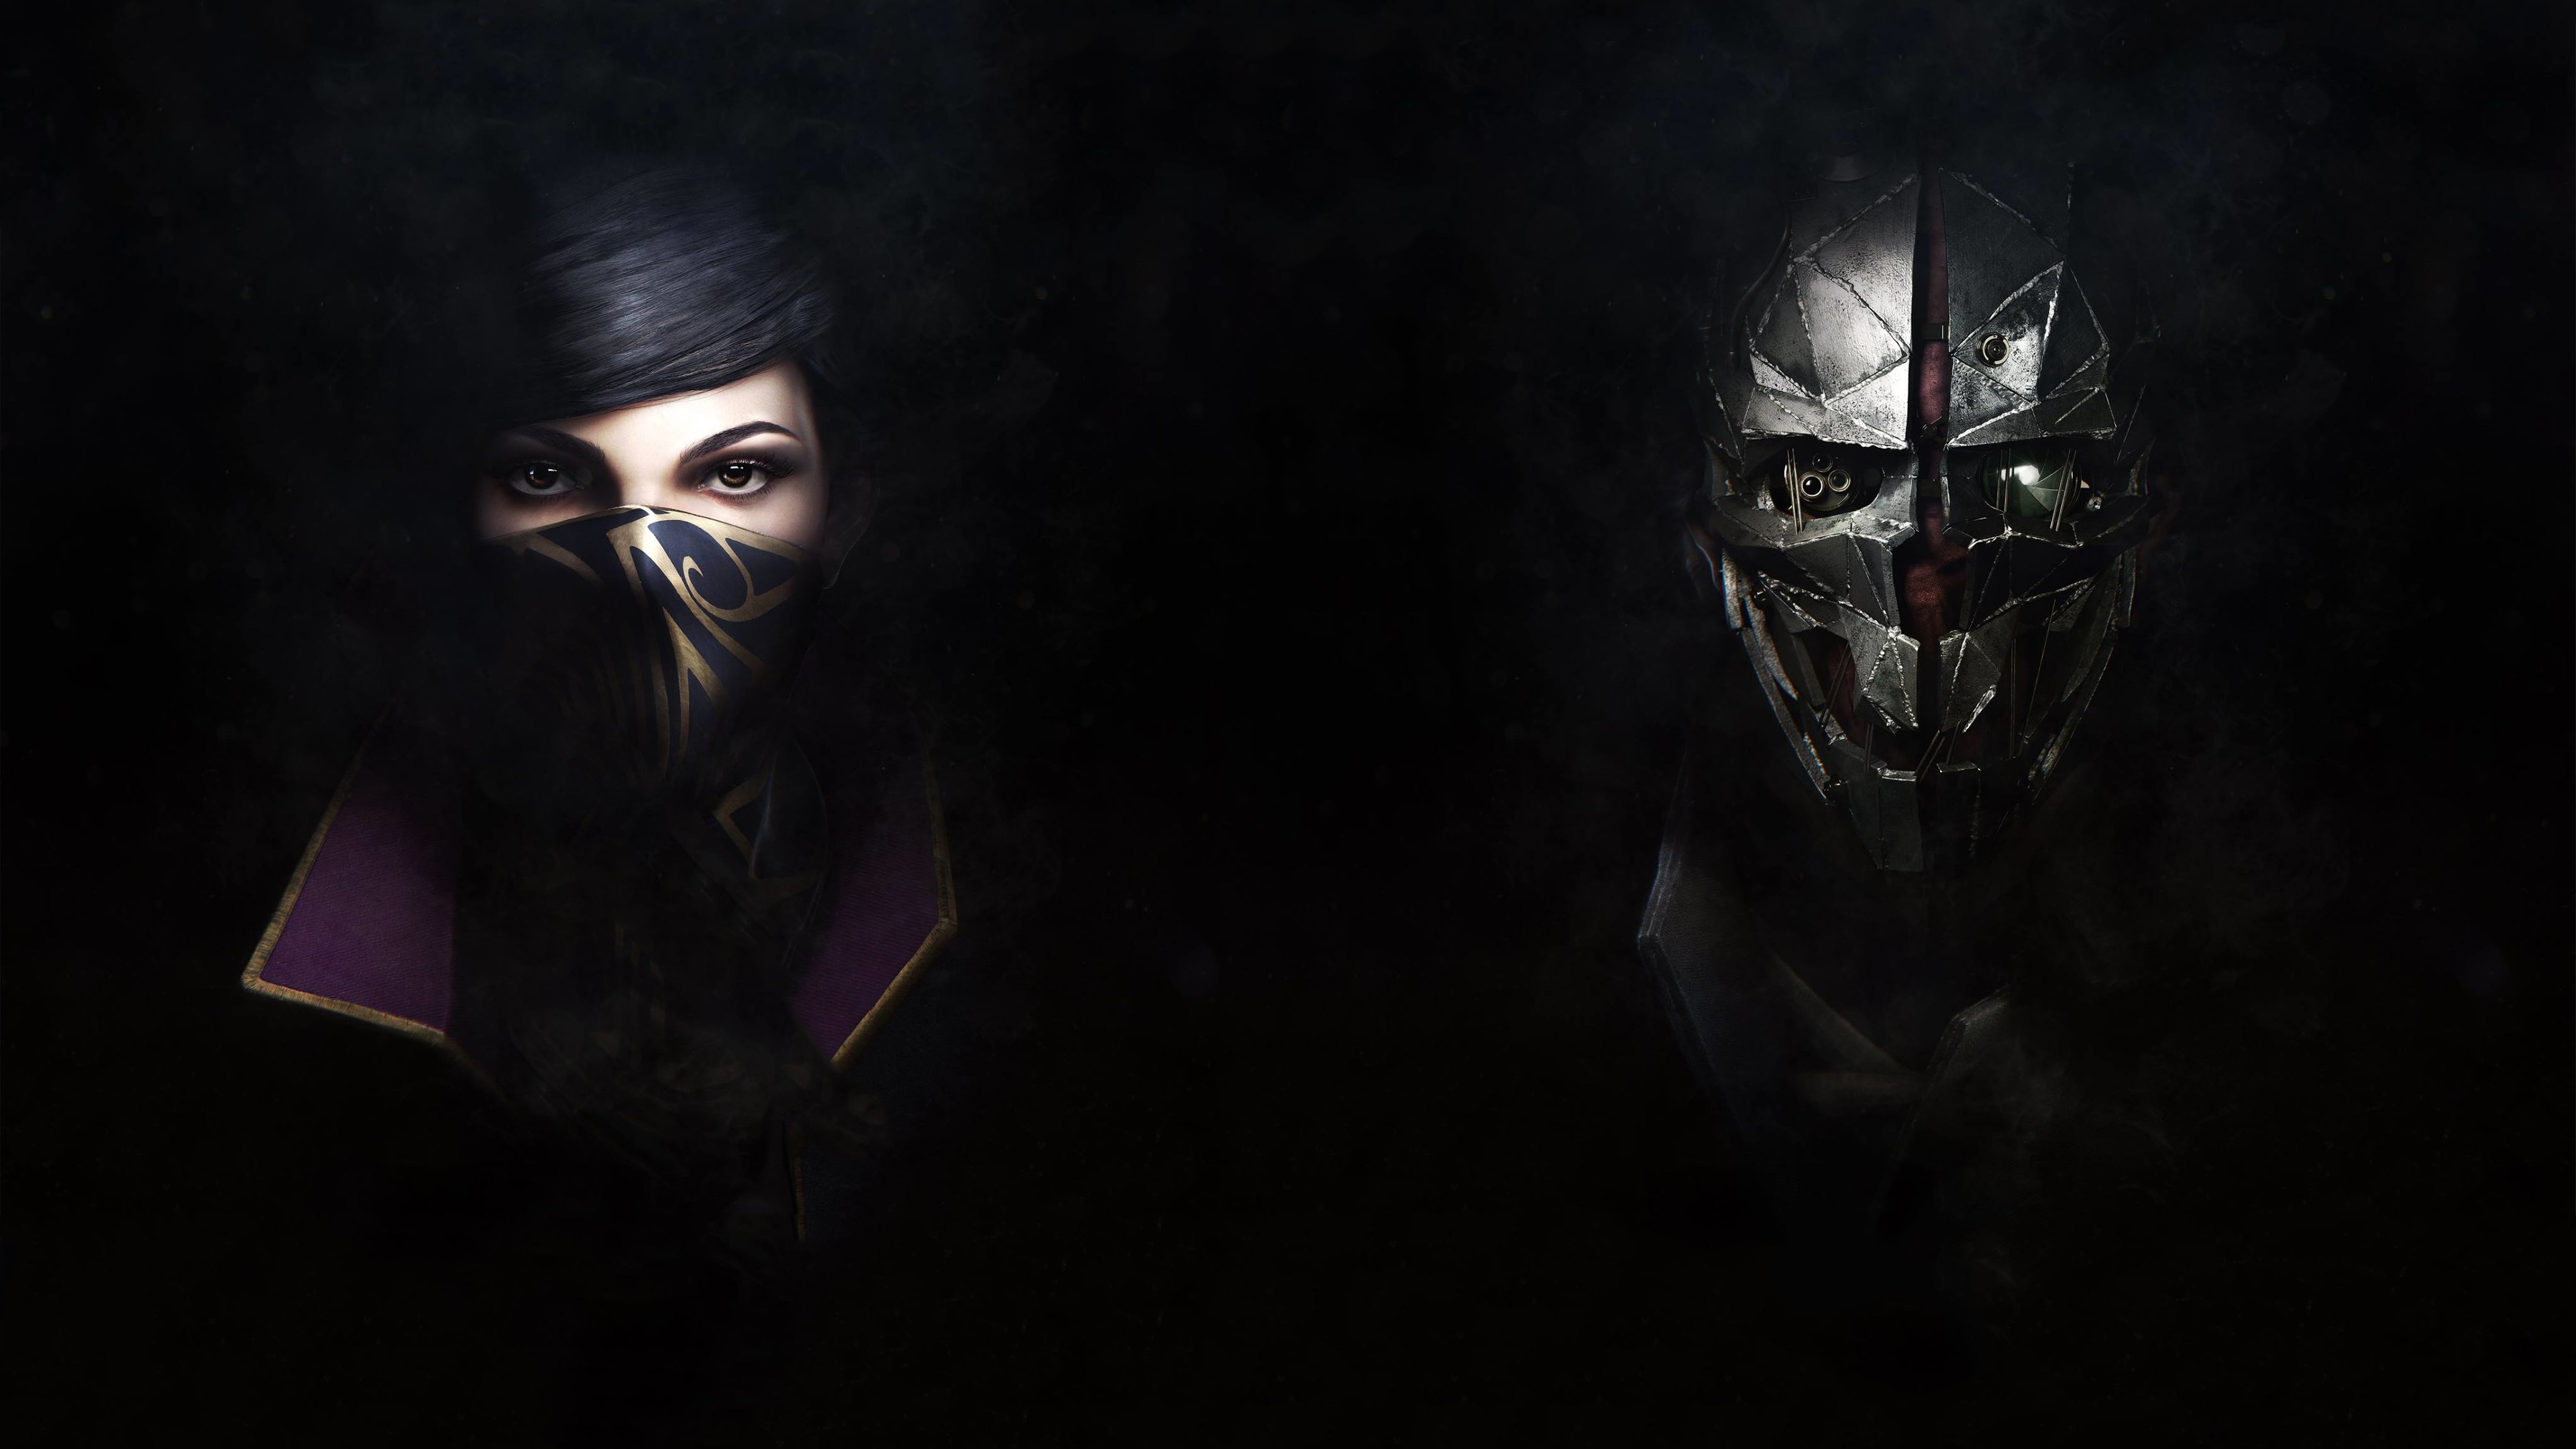 63 dishonored 2 hd wallpapers | background images - wallpaper abyss